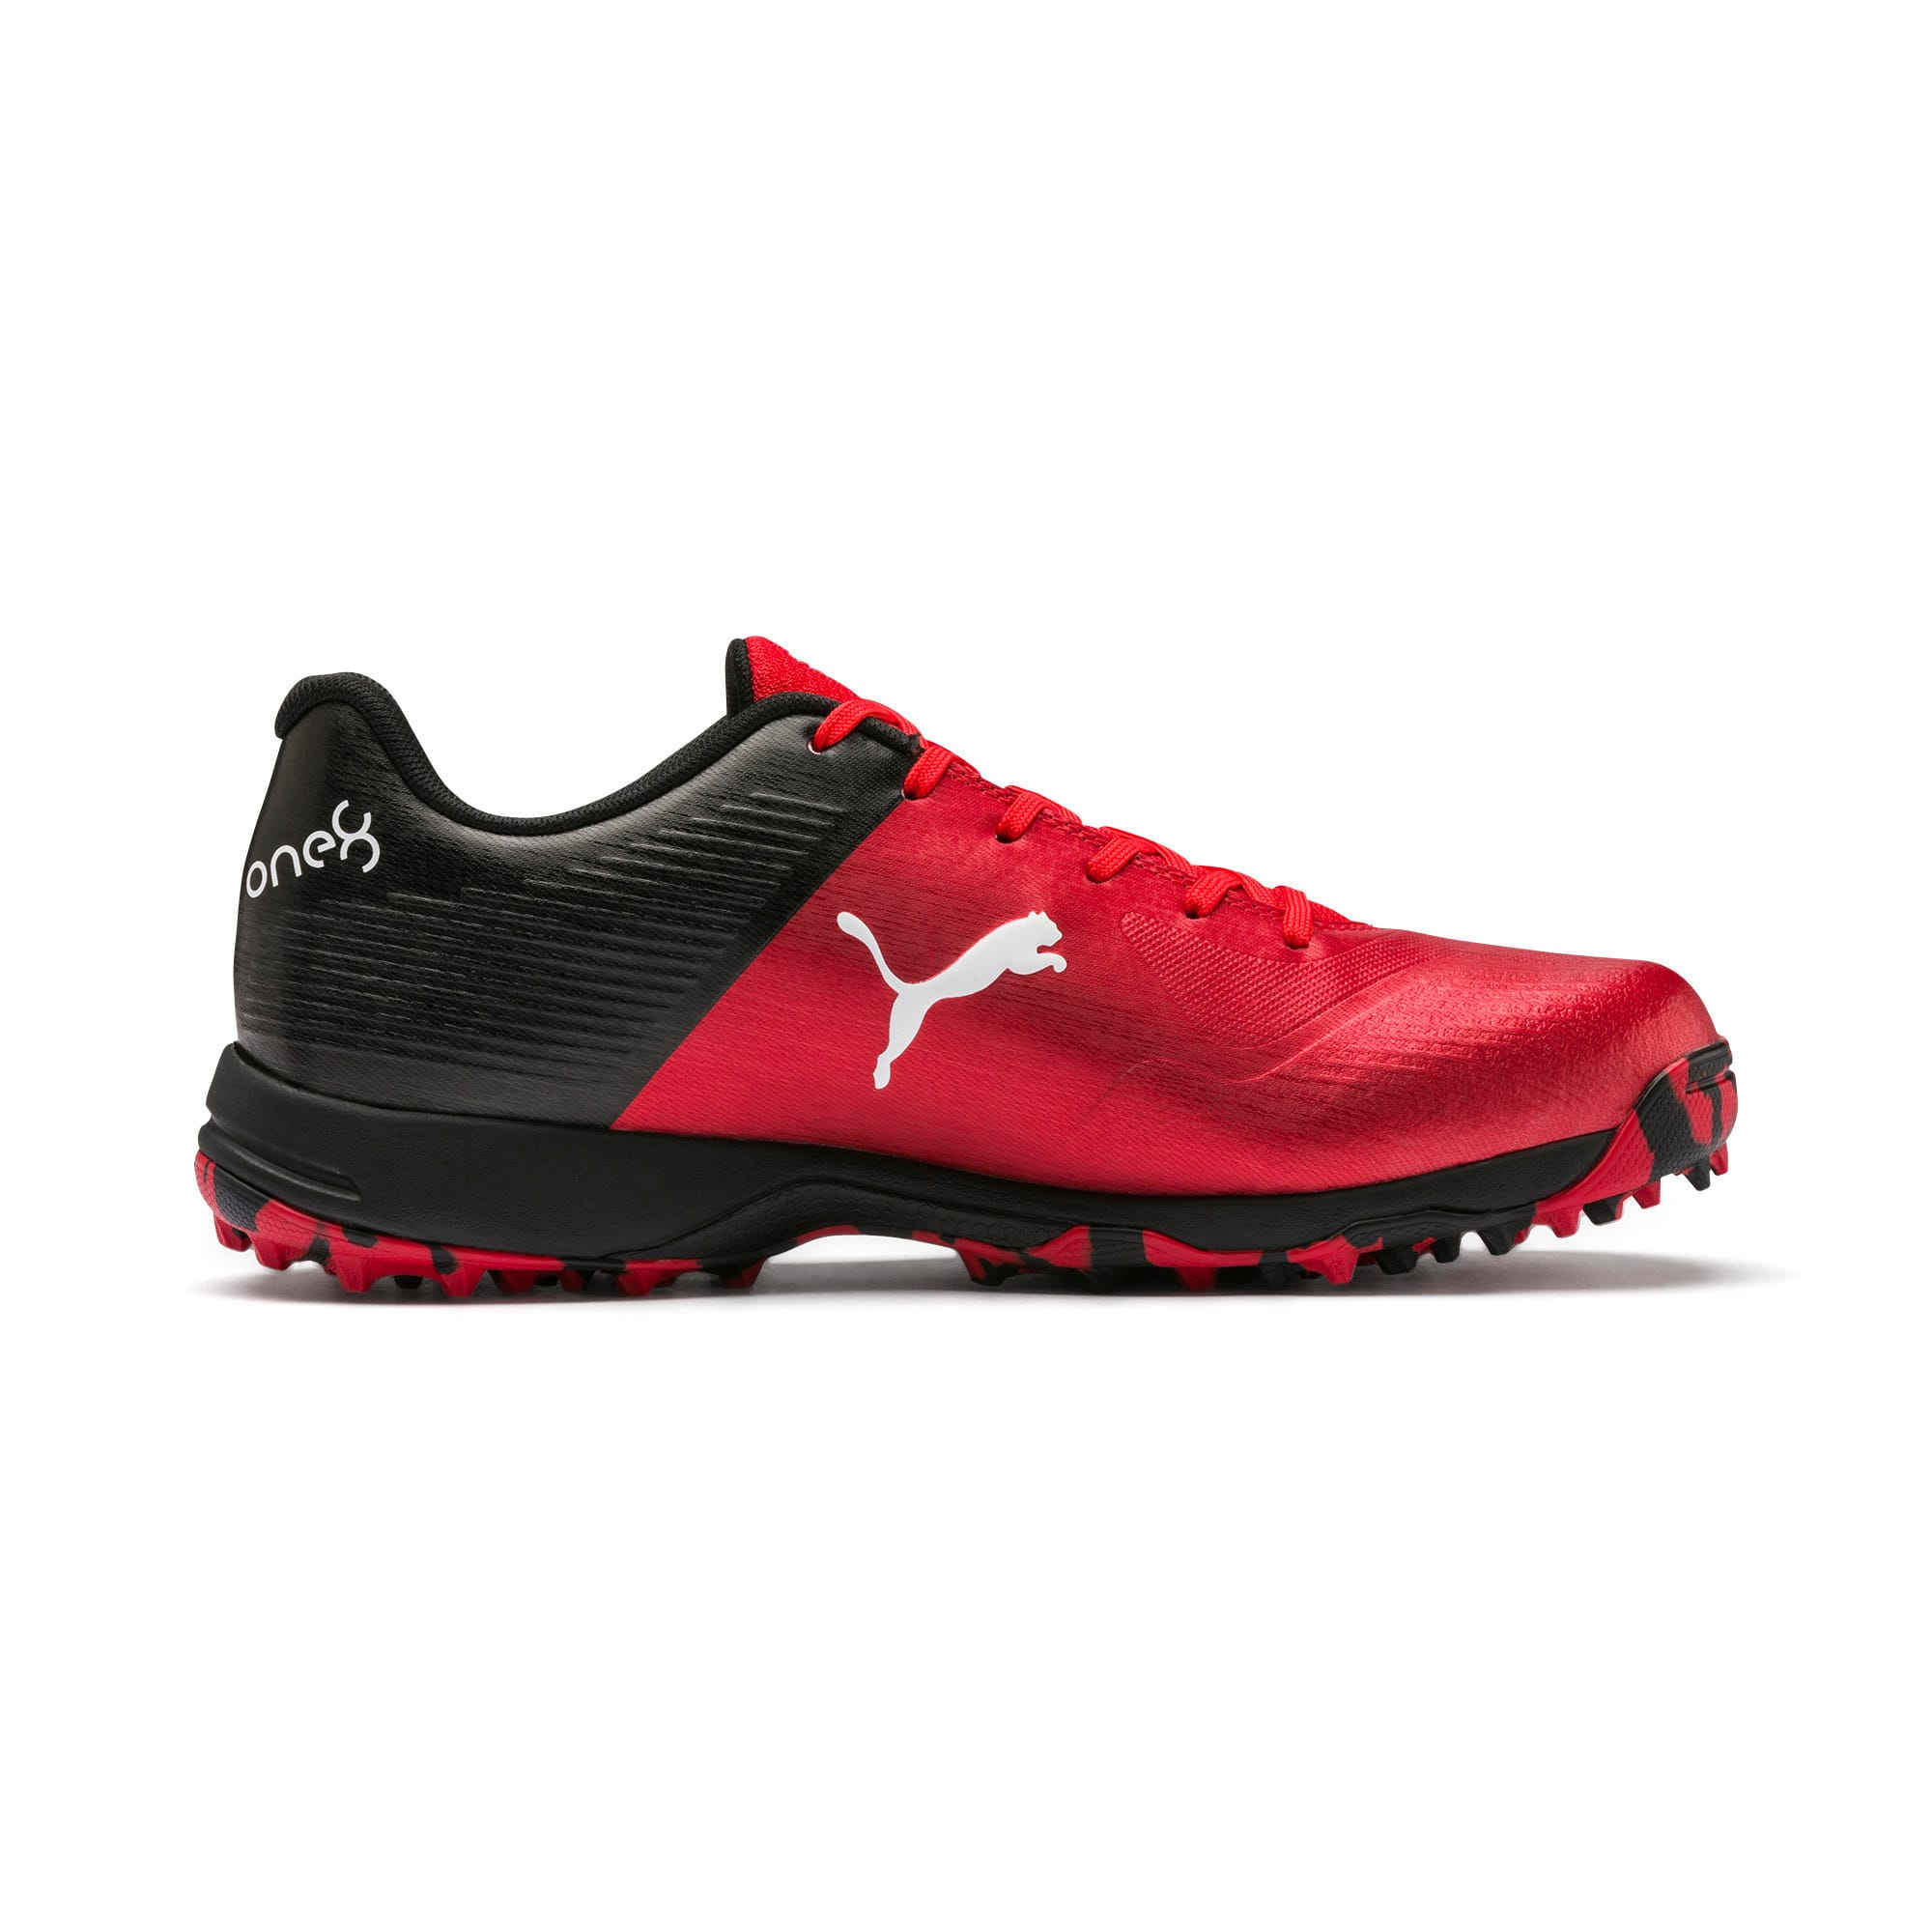 Thumbnail 5 of PUMA 19 FH Rubber Men's Cricket Shoes, High Risk Red-Black-White, medium-IND